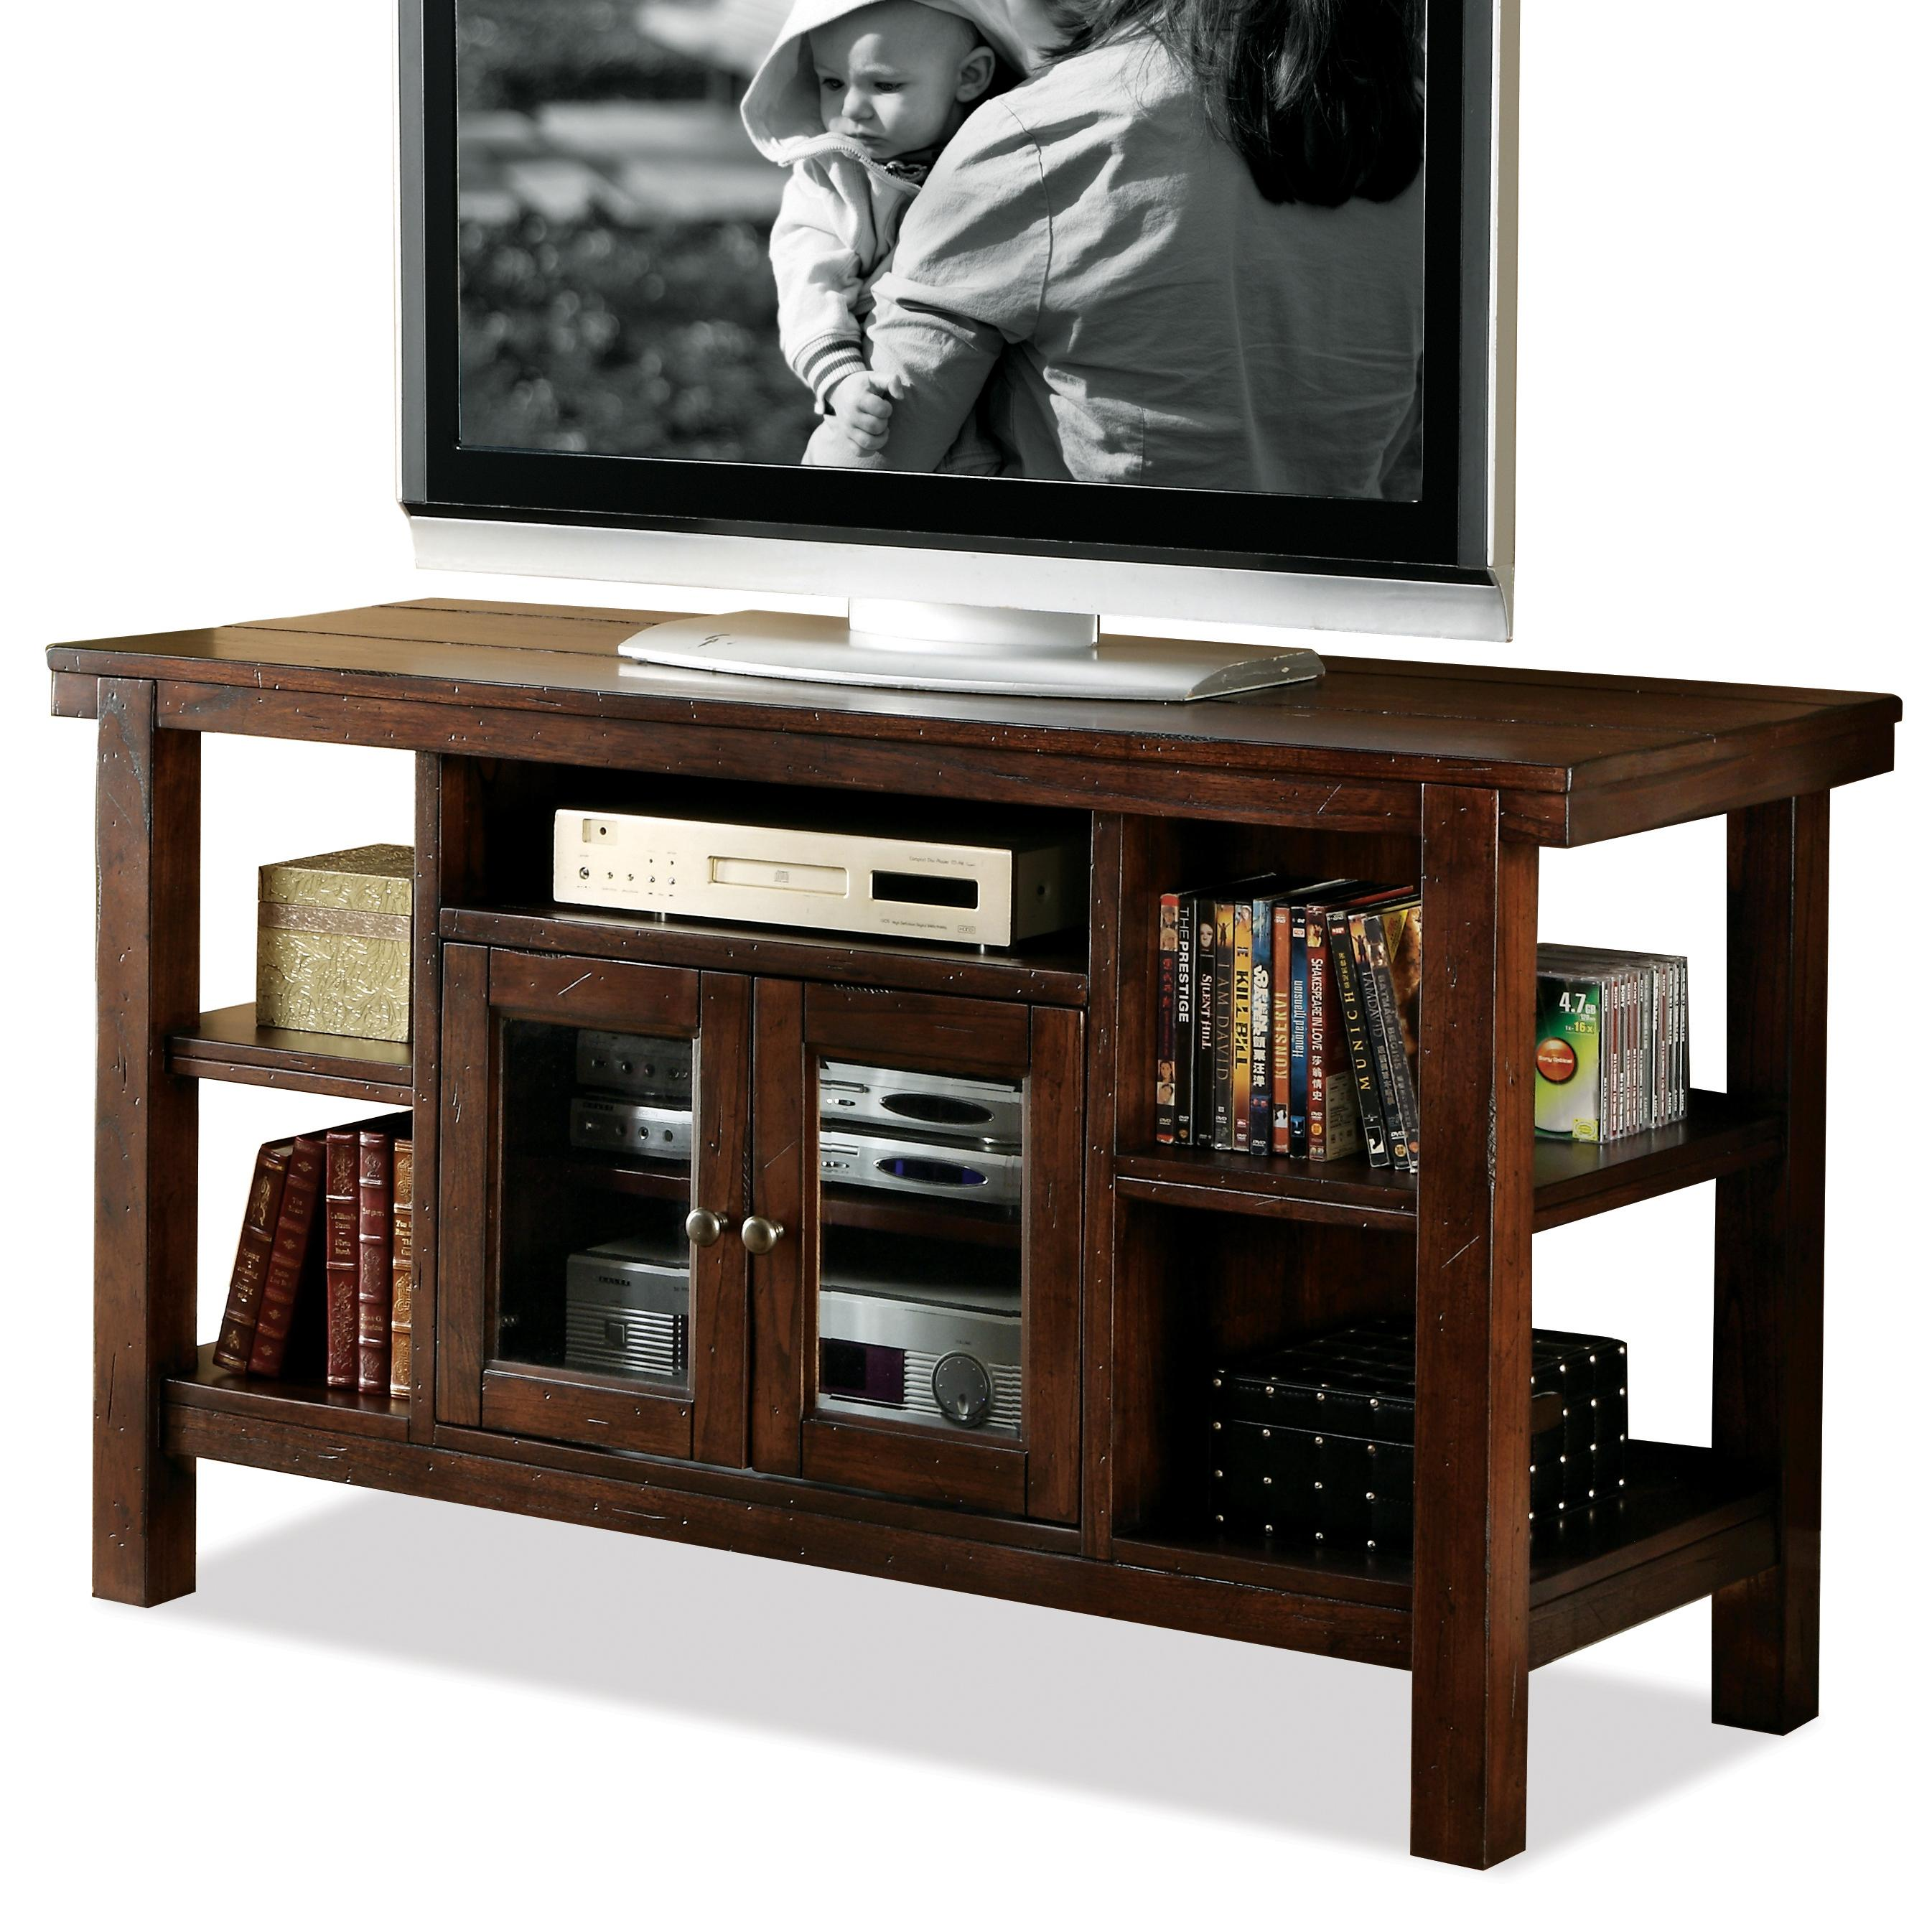 Riverside Furniture Castlewood Console - Item Number: 33515